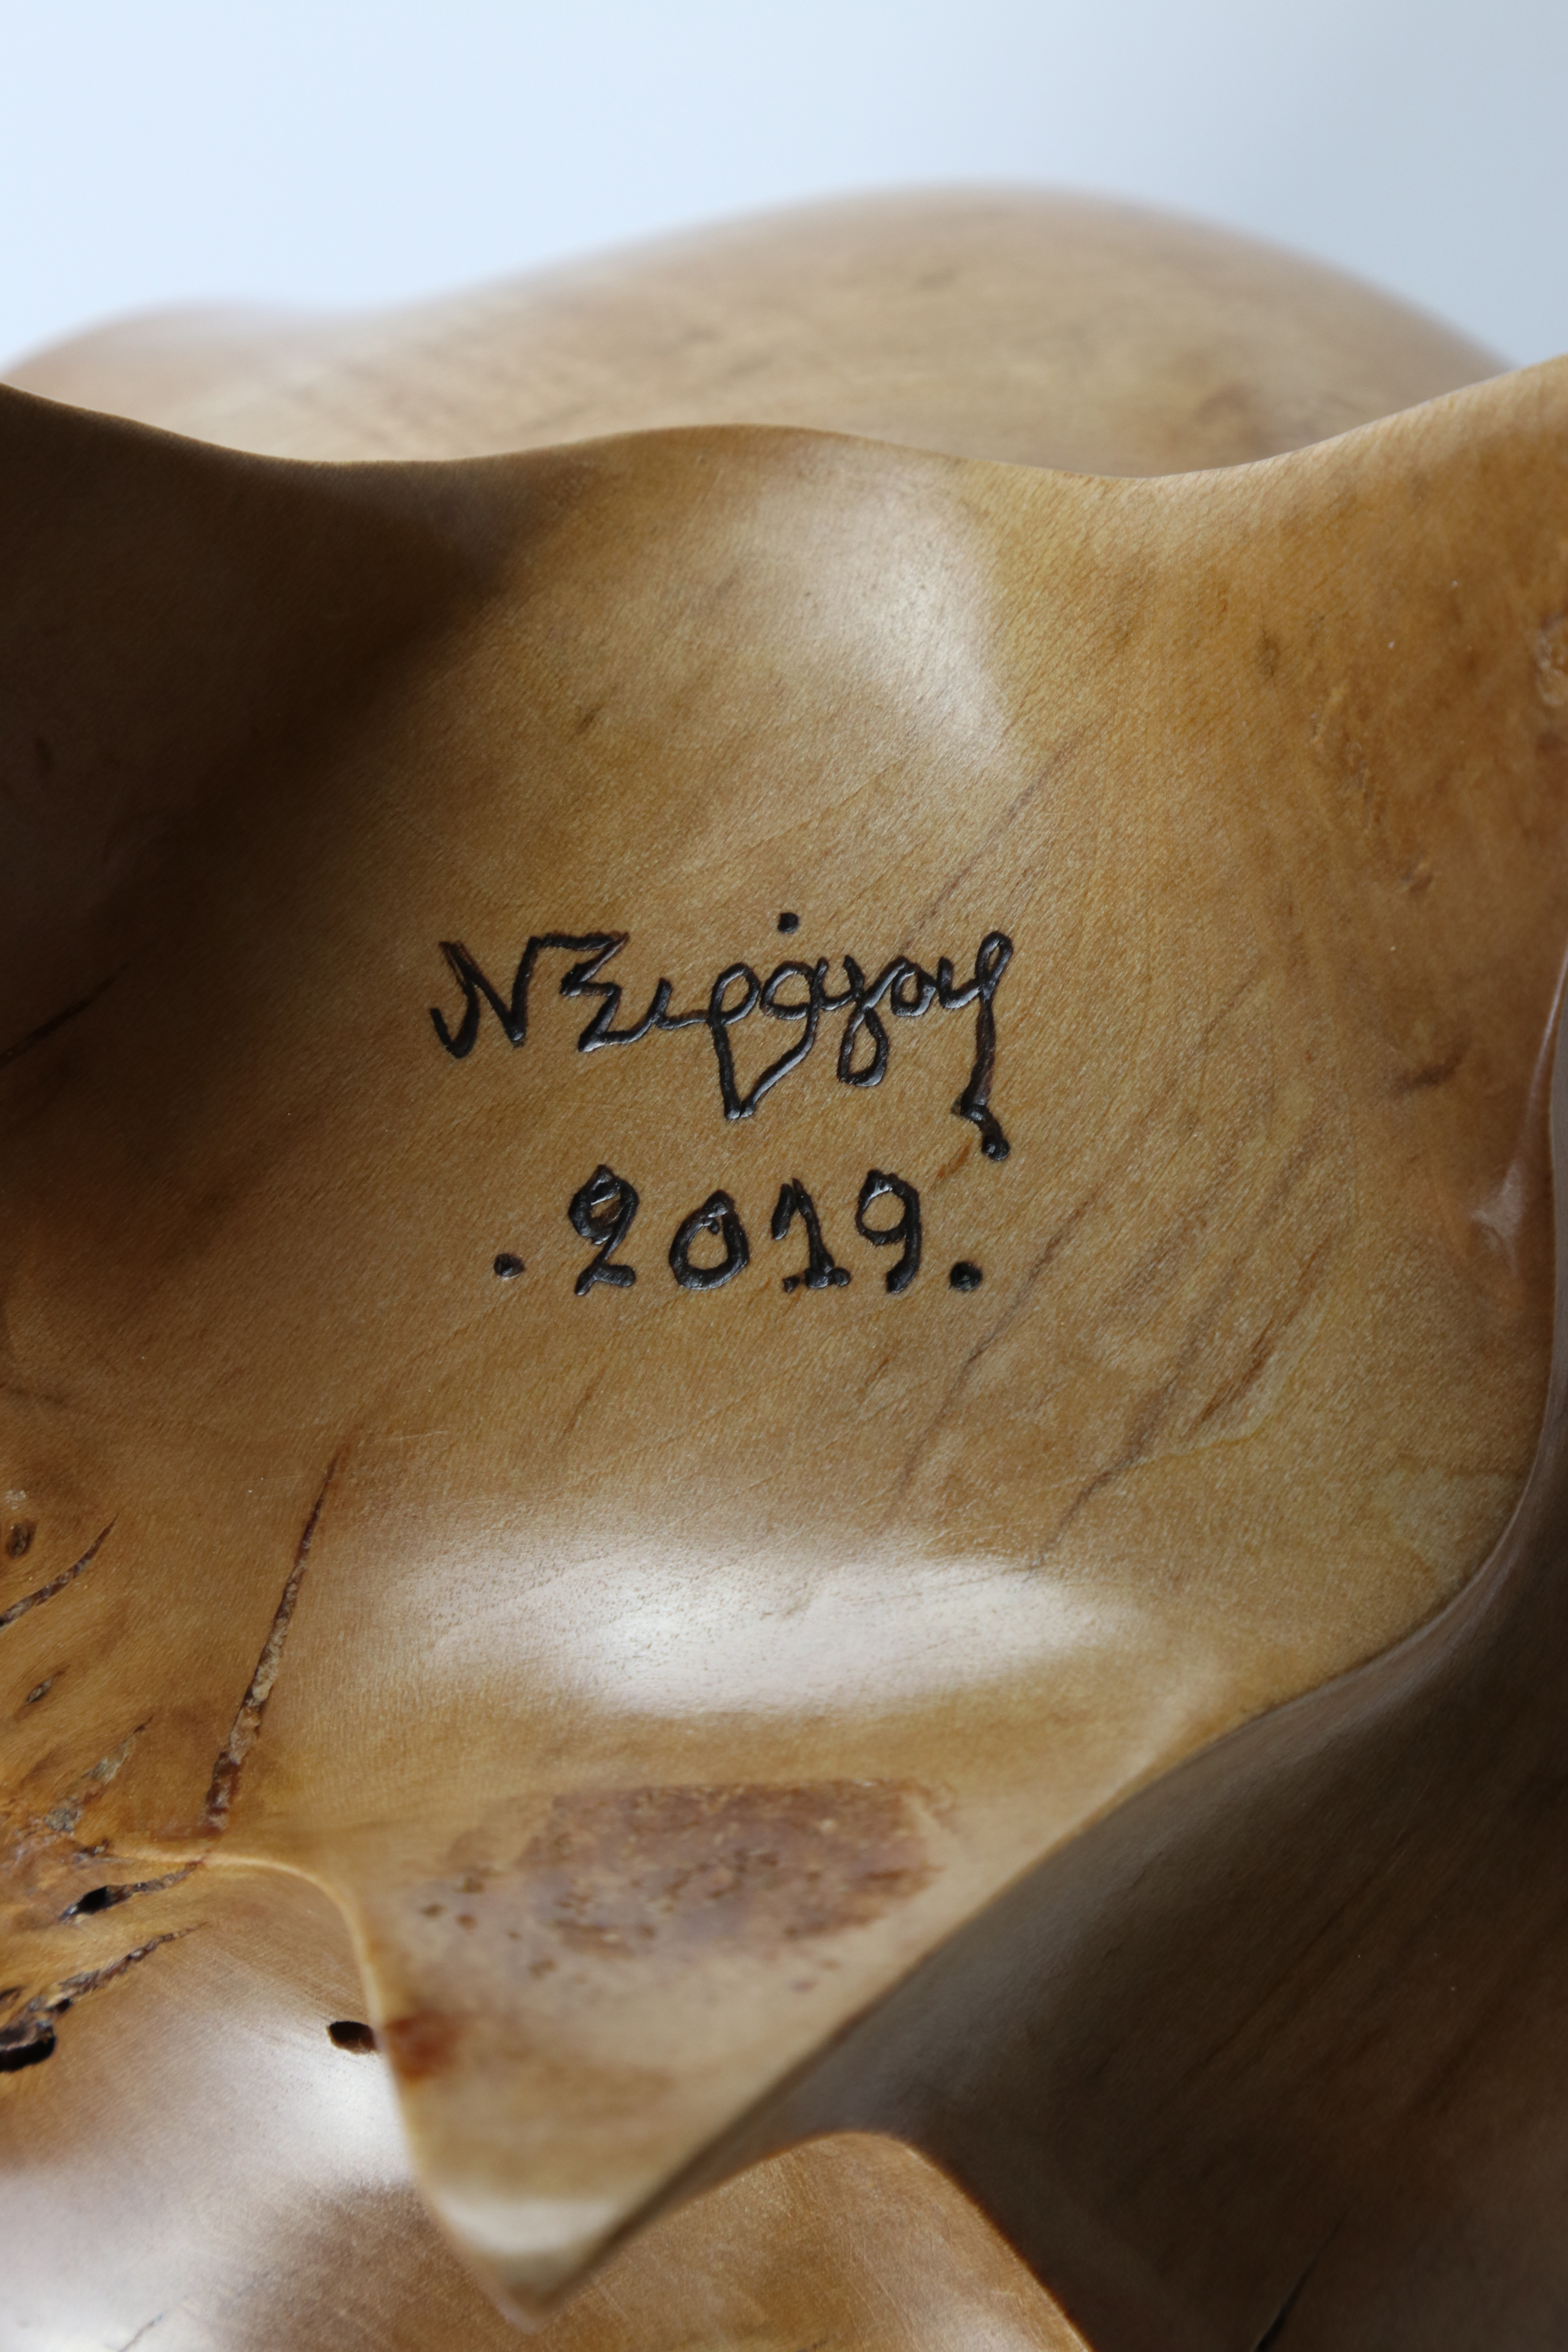 Lot 89 - Nikos Siragas (Greece) burr maple carved vessel 22x14cm. Signed